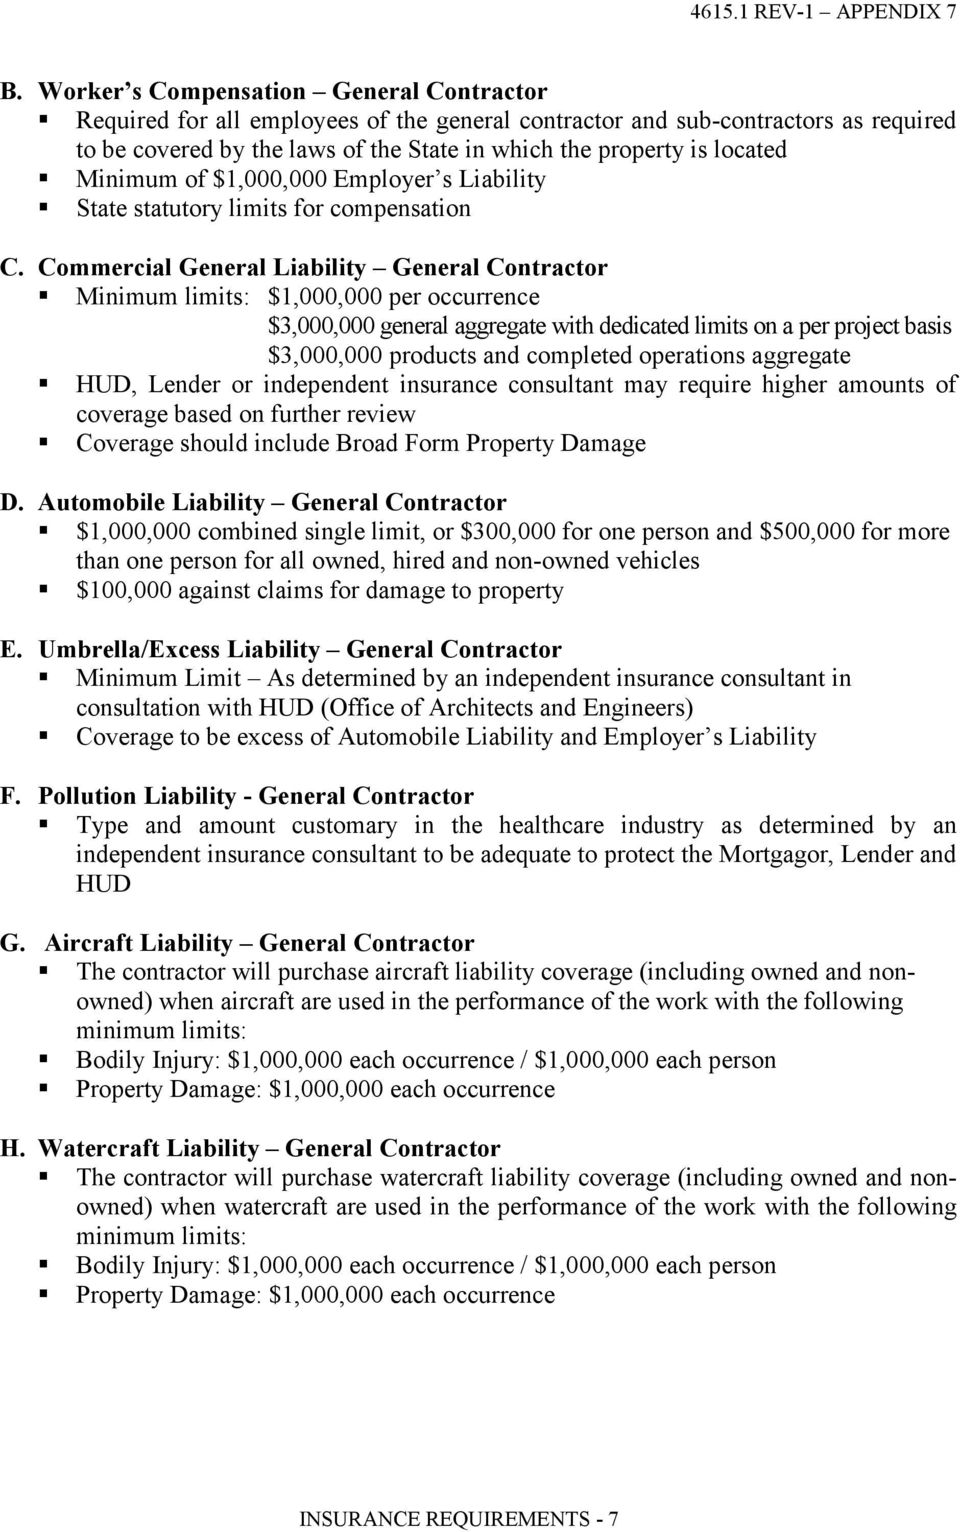 Commercial General Liability General Contractor Minimum limits: $1,000,000 per occurrence $3,000,000 general aggregate with dedicated limits on a per project basis $3,000,000 products and completed